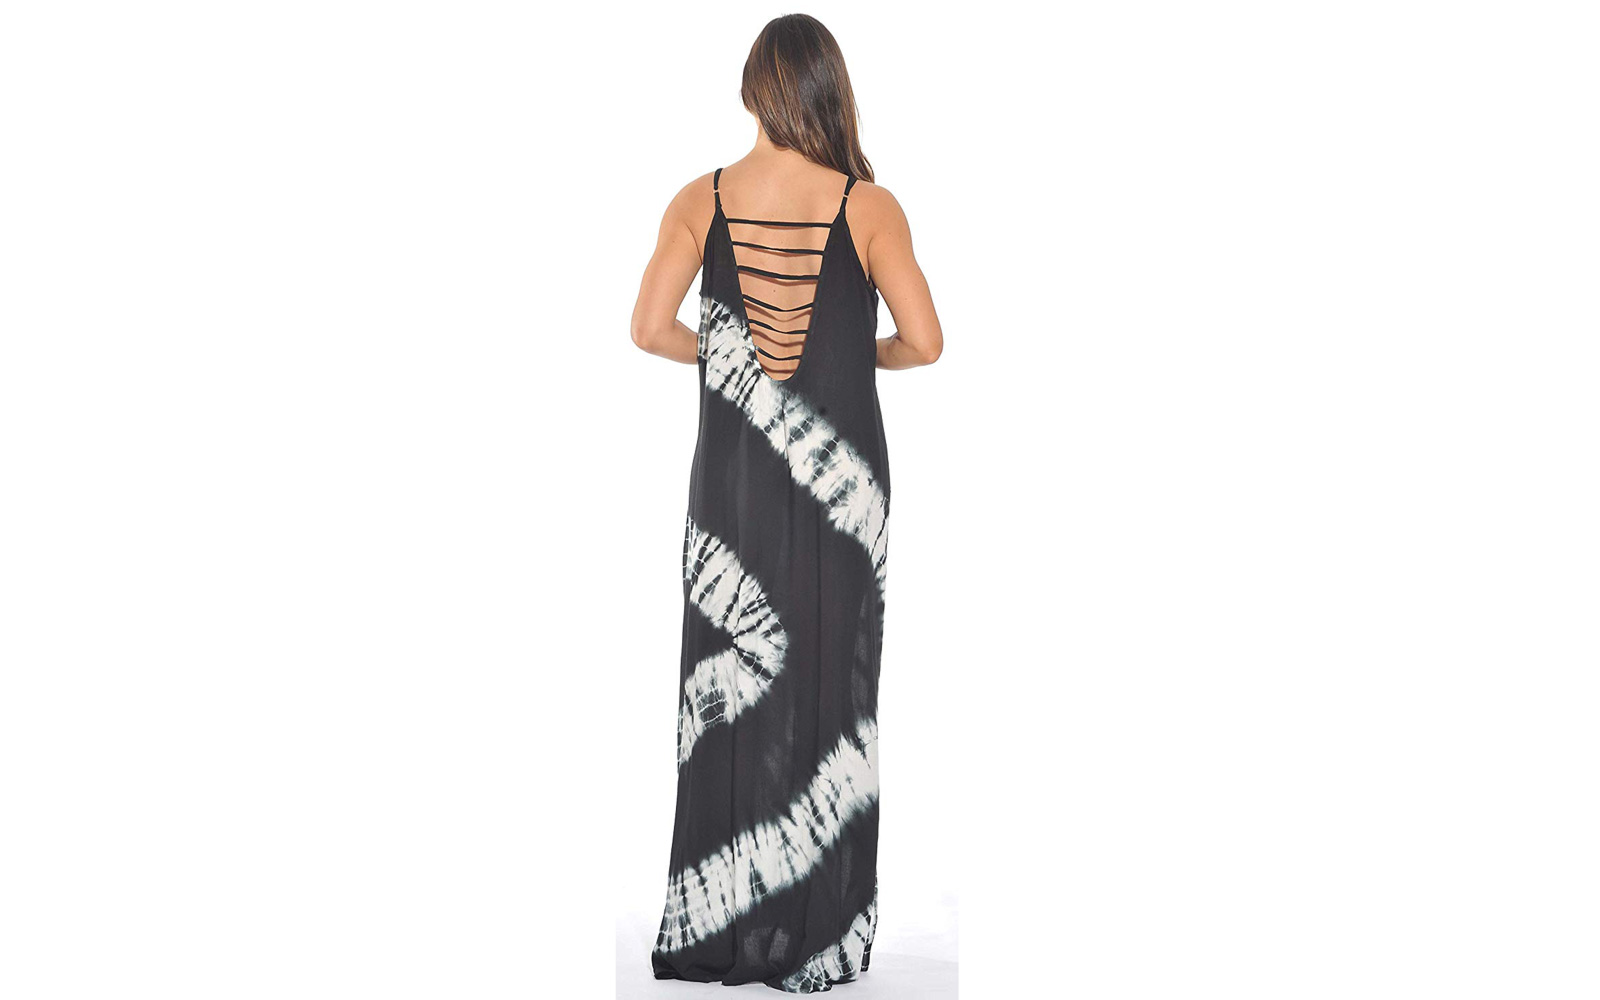 b1c399d8c6 15 Breezy Maxi Dresses You'll Be Wearing On Repeat This Summer ...